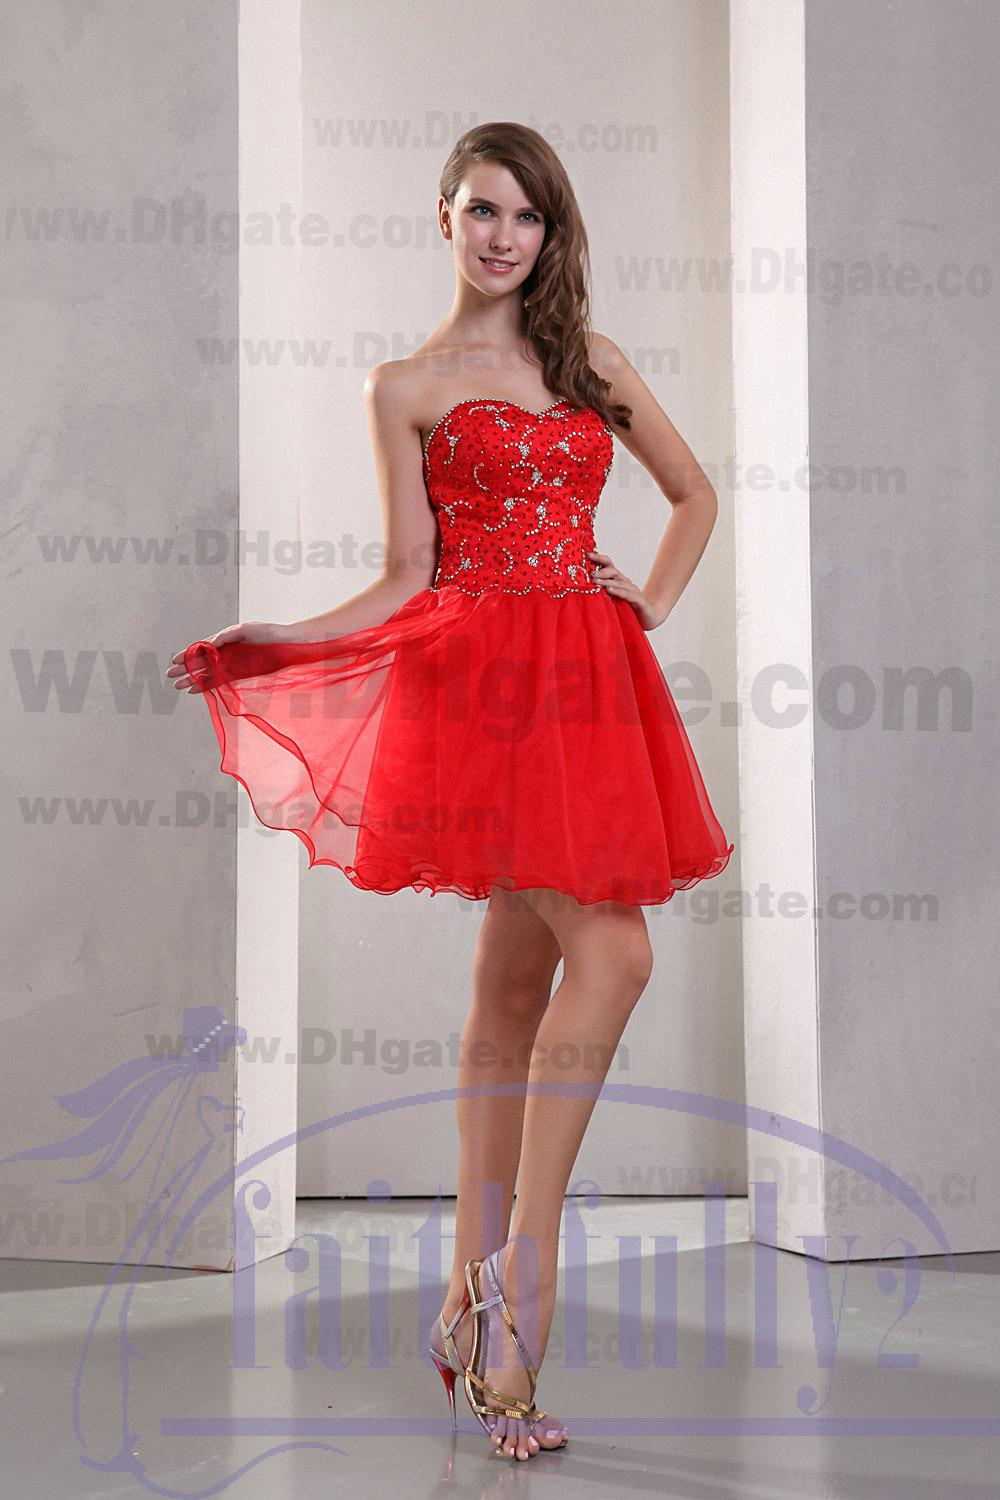 Collection Hot Red Dresses Pictures - The Fashions Of Paradise